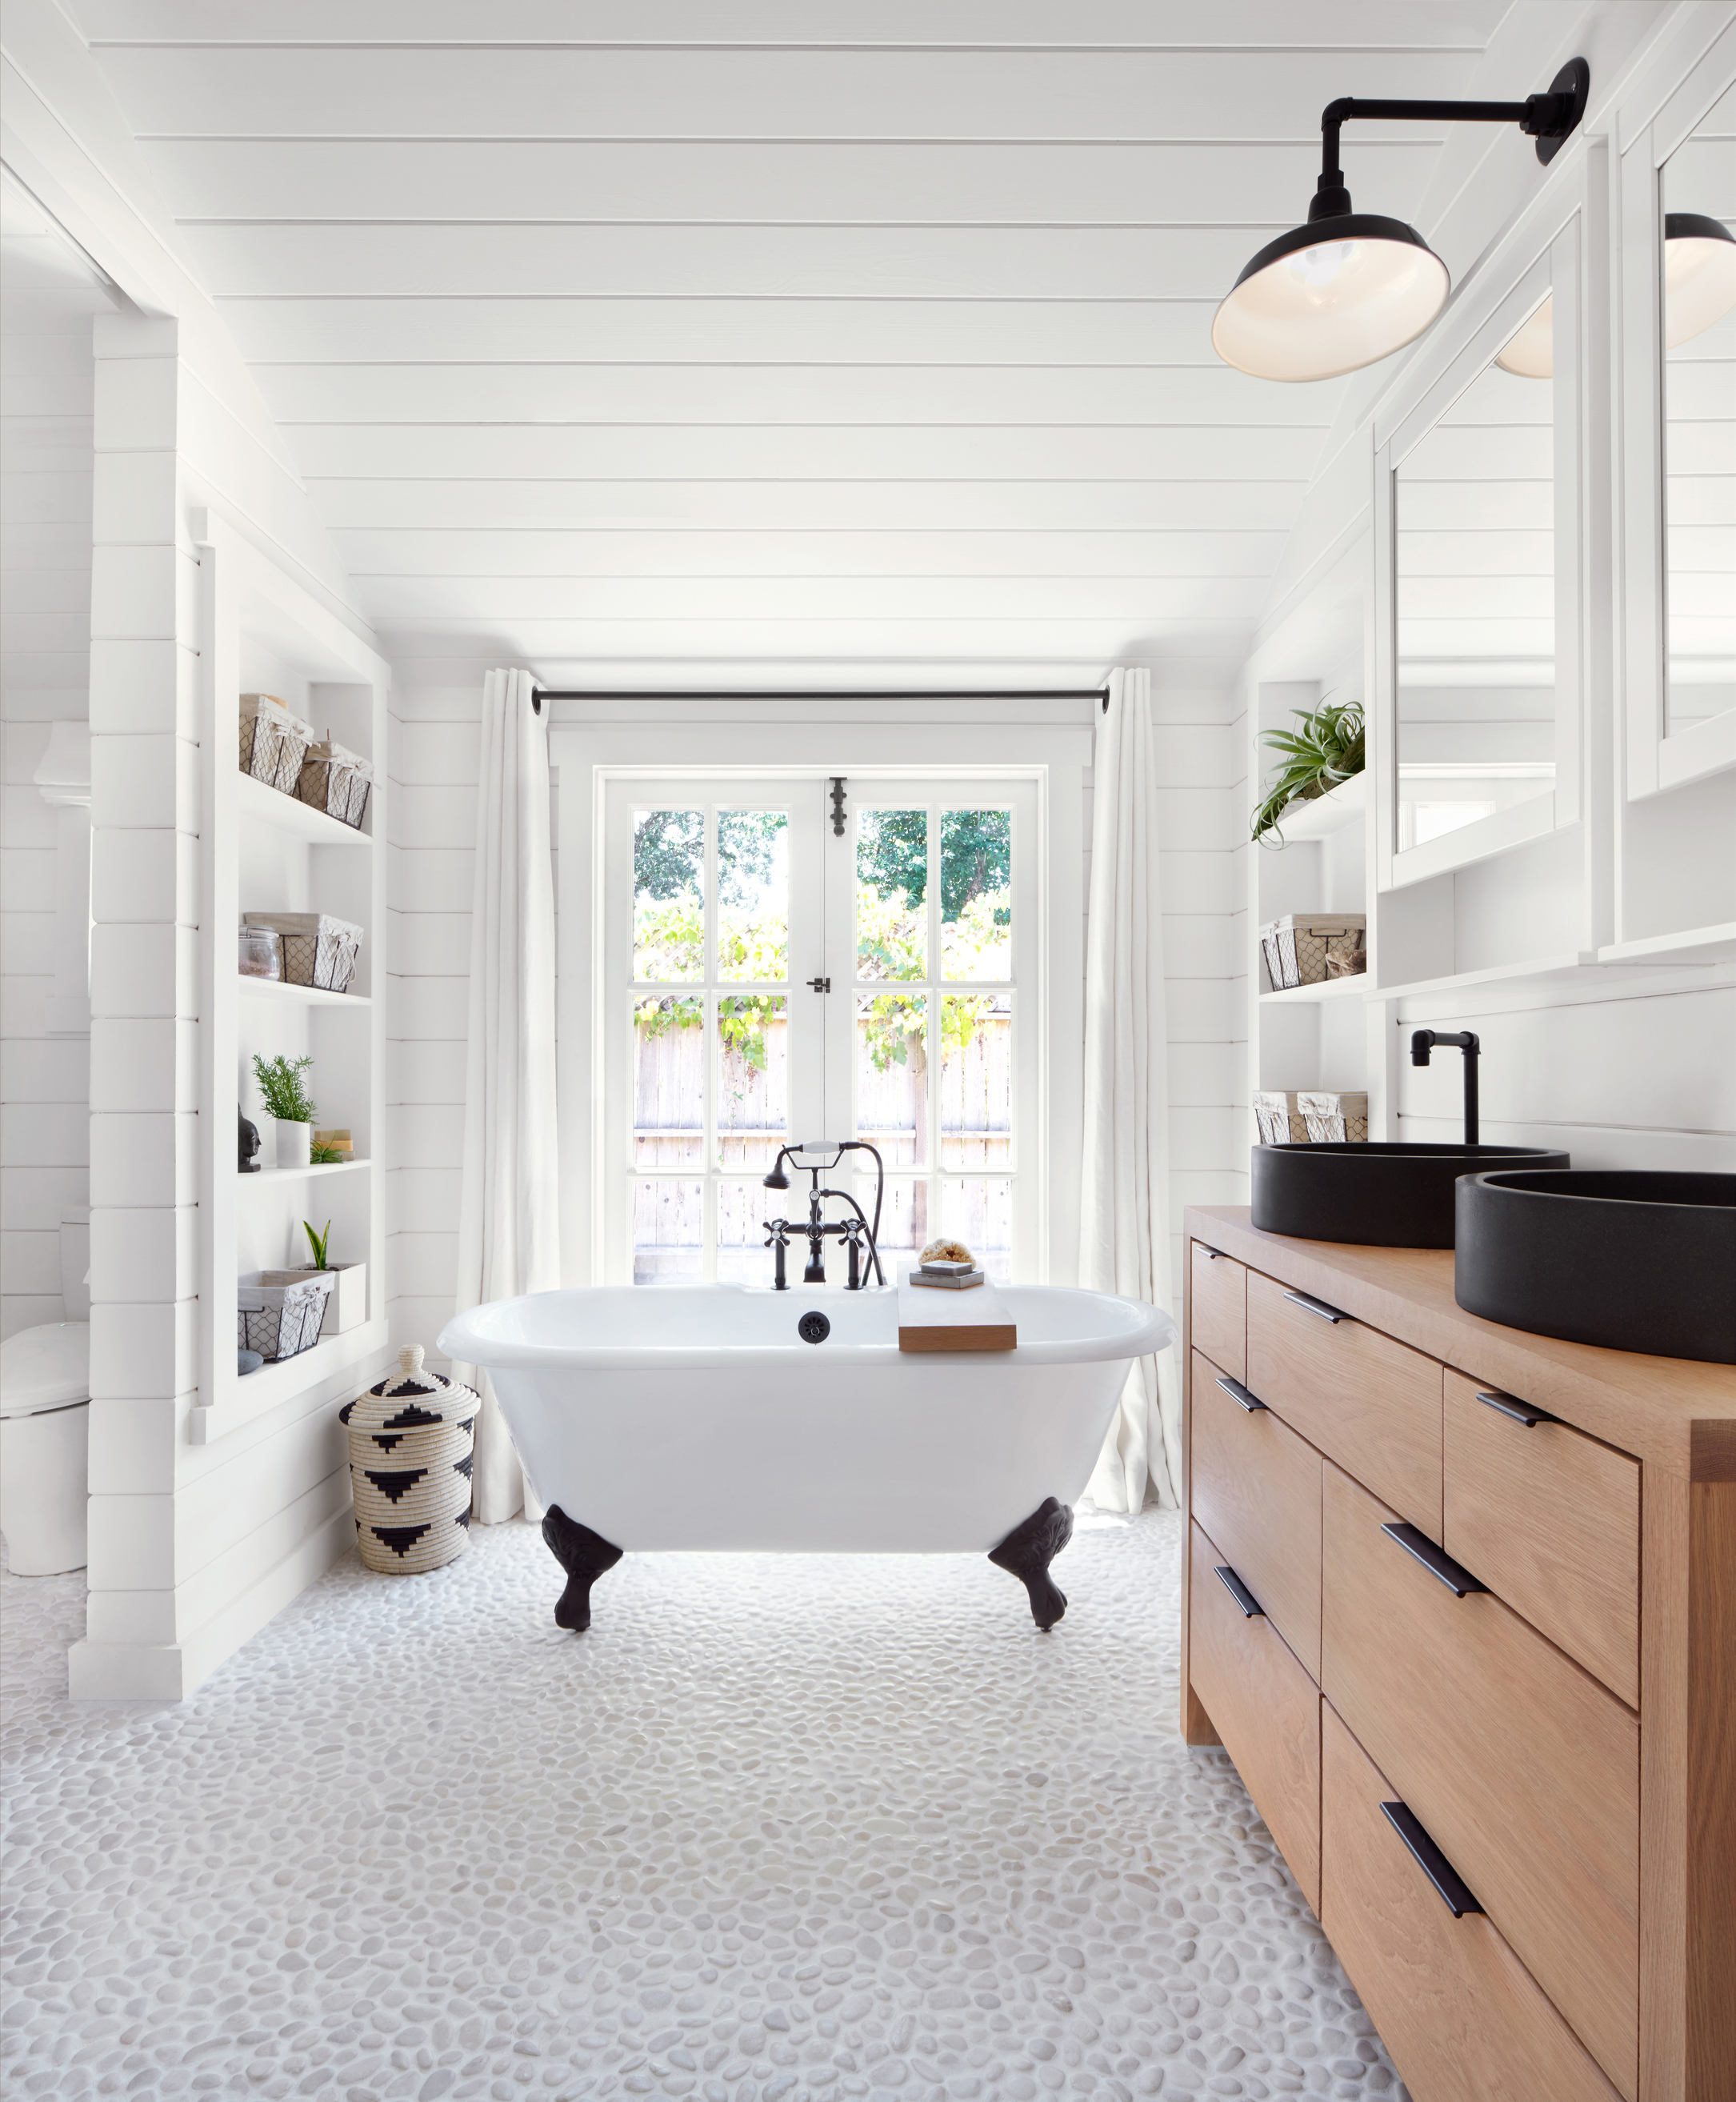 a guide to clawfoot bathtubs - cottage style decorating, renovating and entertaining ideas for